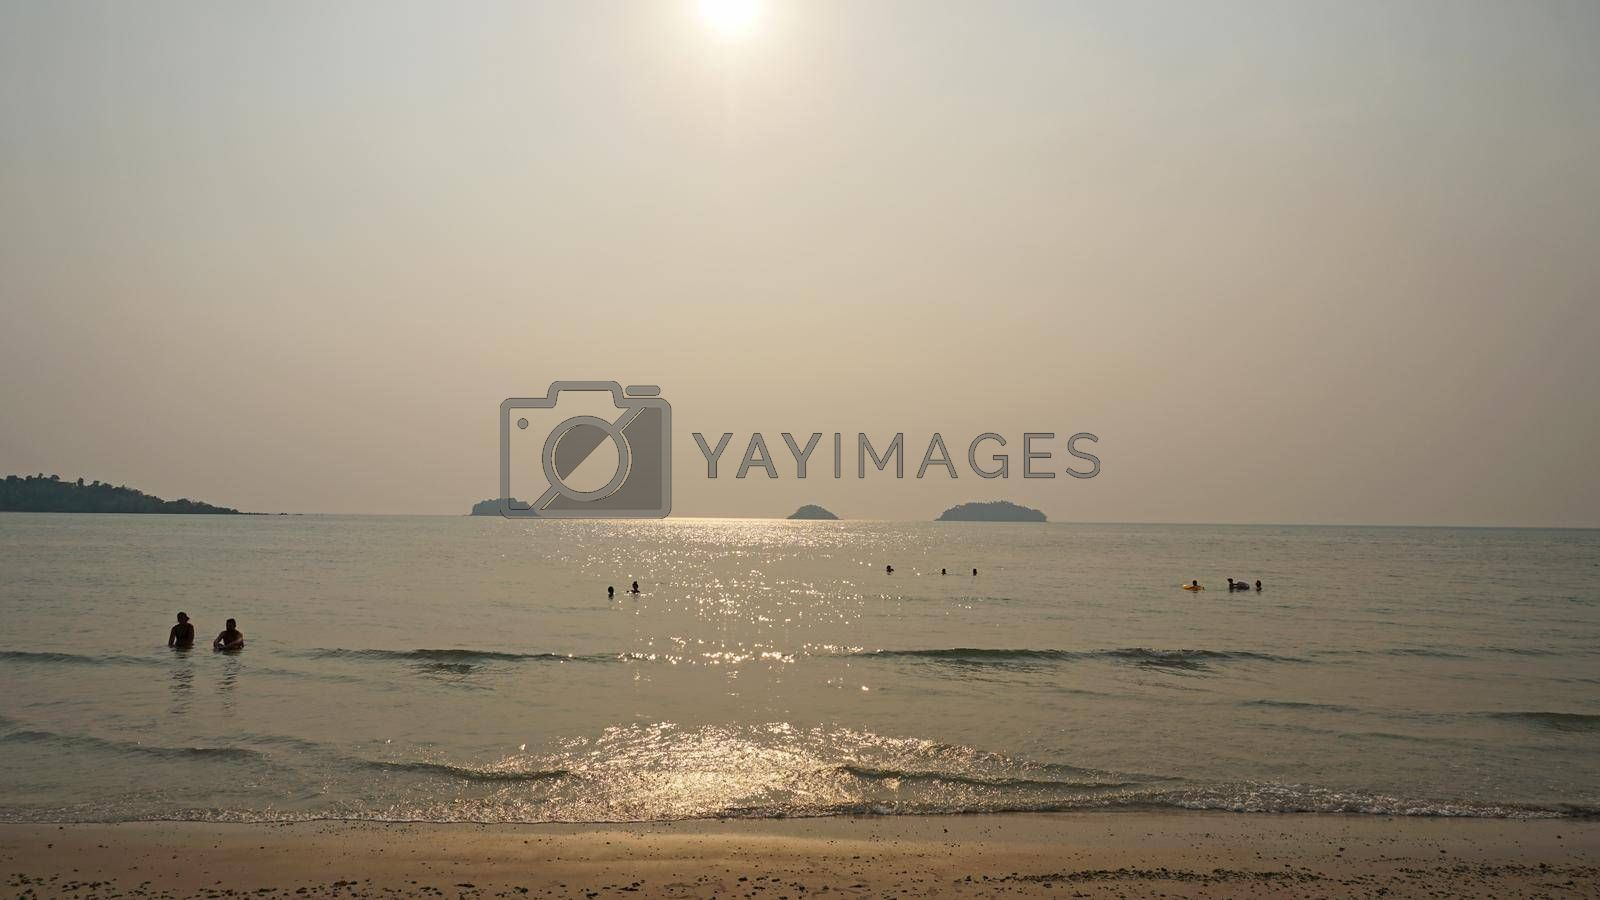 Smog obscures the sun's rays. People relax on the beach. Yellow rays of light. View of the islands, sand, sea and palm trees. Dirty air, smog. Chang Island, Thailand.